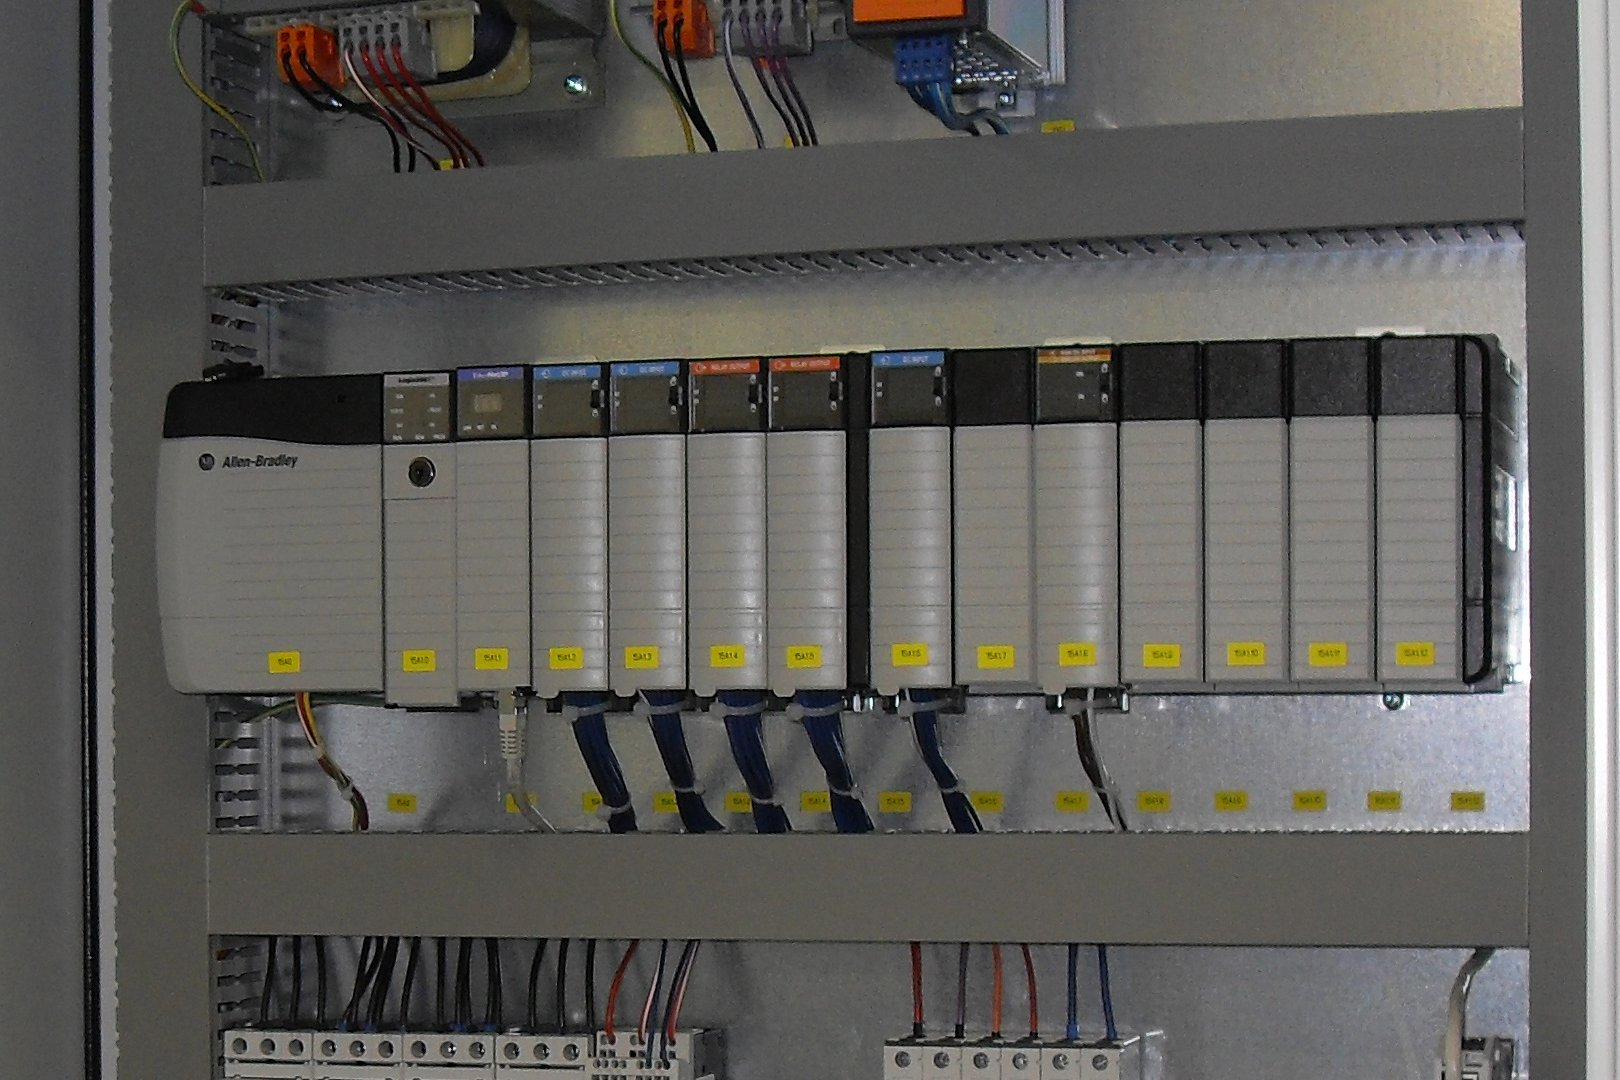 hight resolution of all about industrial control panels hardcore electric industrial control panel wiring standards industrial control panel wiring